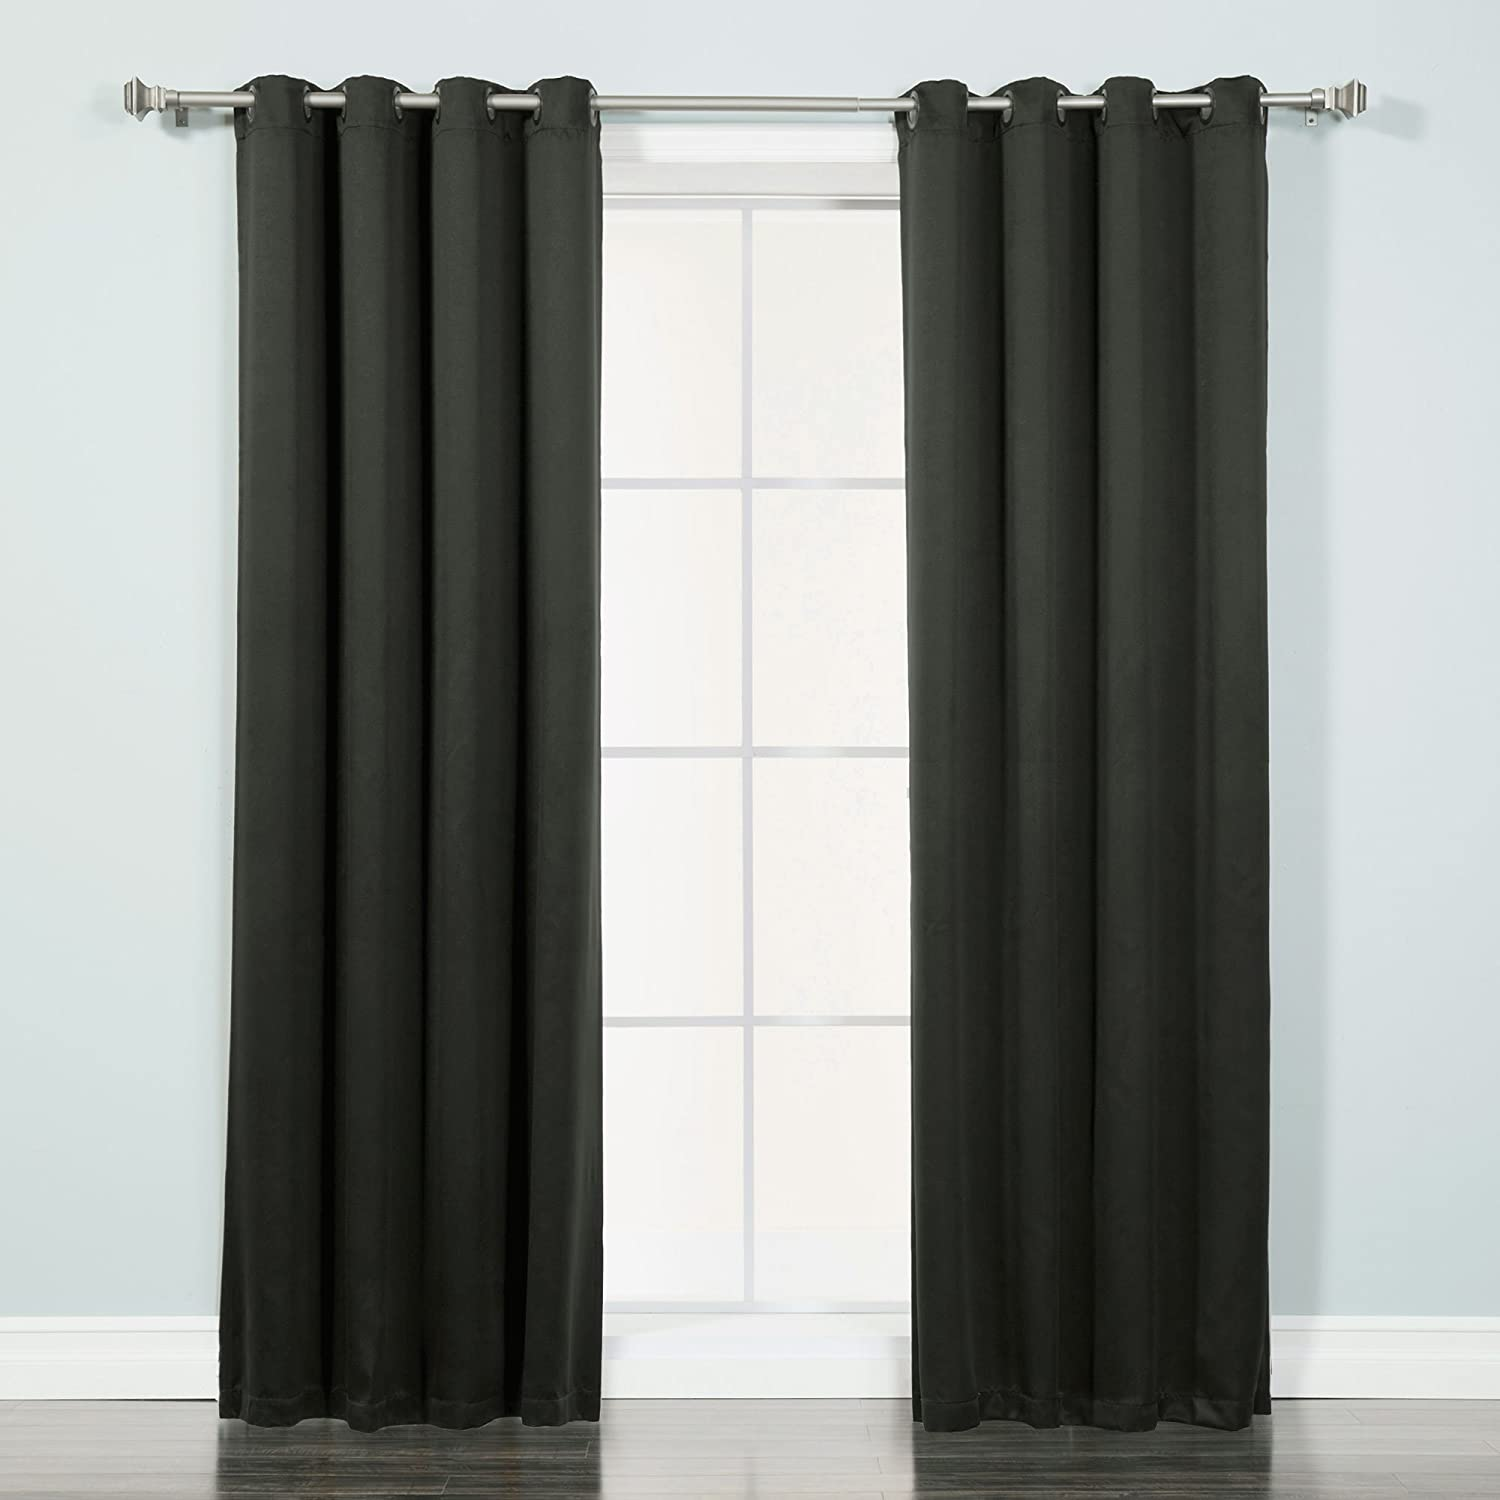 Best Home Fashion Thermal Insulated Blackout Curtains - Antique Bronze Grommet Top - Black - 52